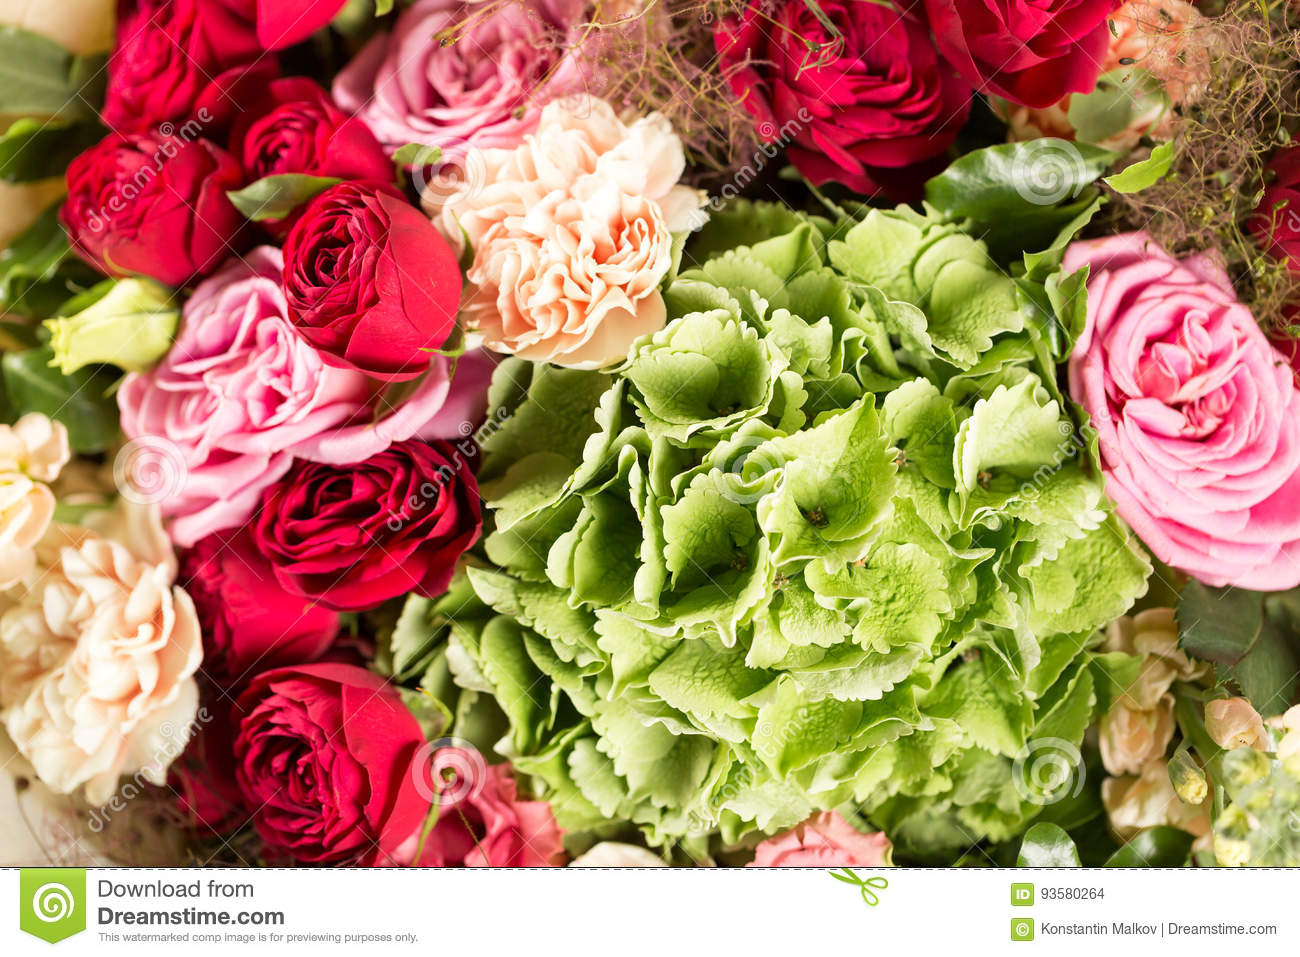 Still life flowers peonies beauty stock photos 468 images still life with a bouquet of flowers the florist put together a beautiful bunch of izmirmasajfo Image collections